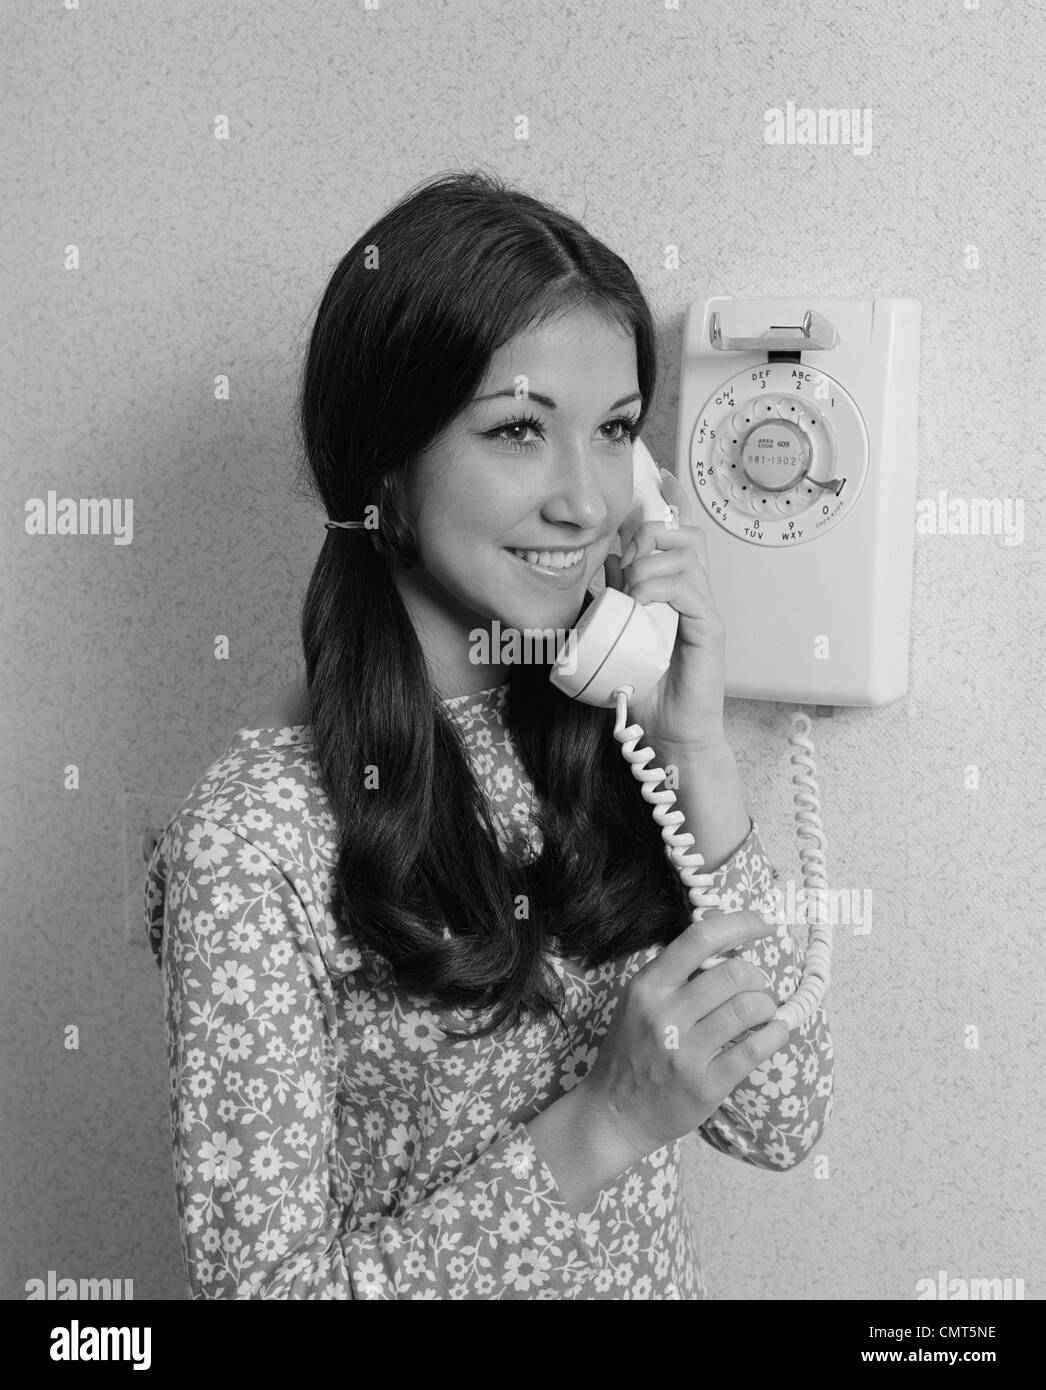 1960s 1970s SMILING TEENAGE GIRL TALKING ON ROTARY WALL TELEPHONE - Stock Image